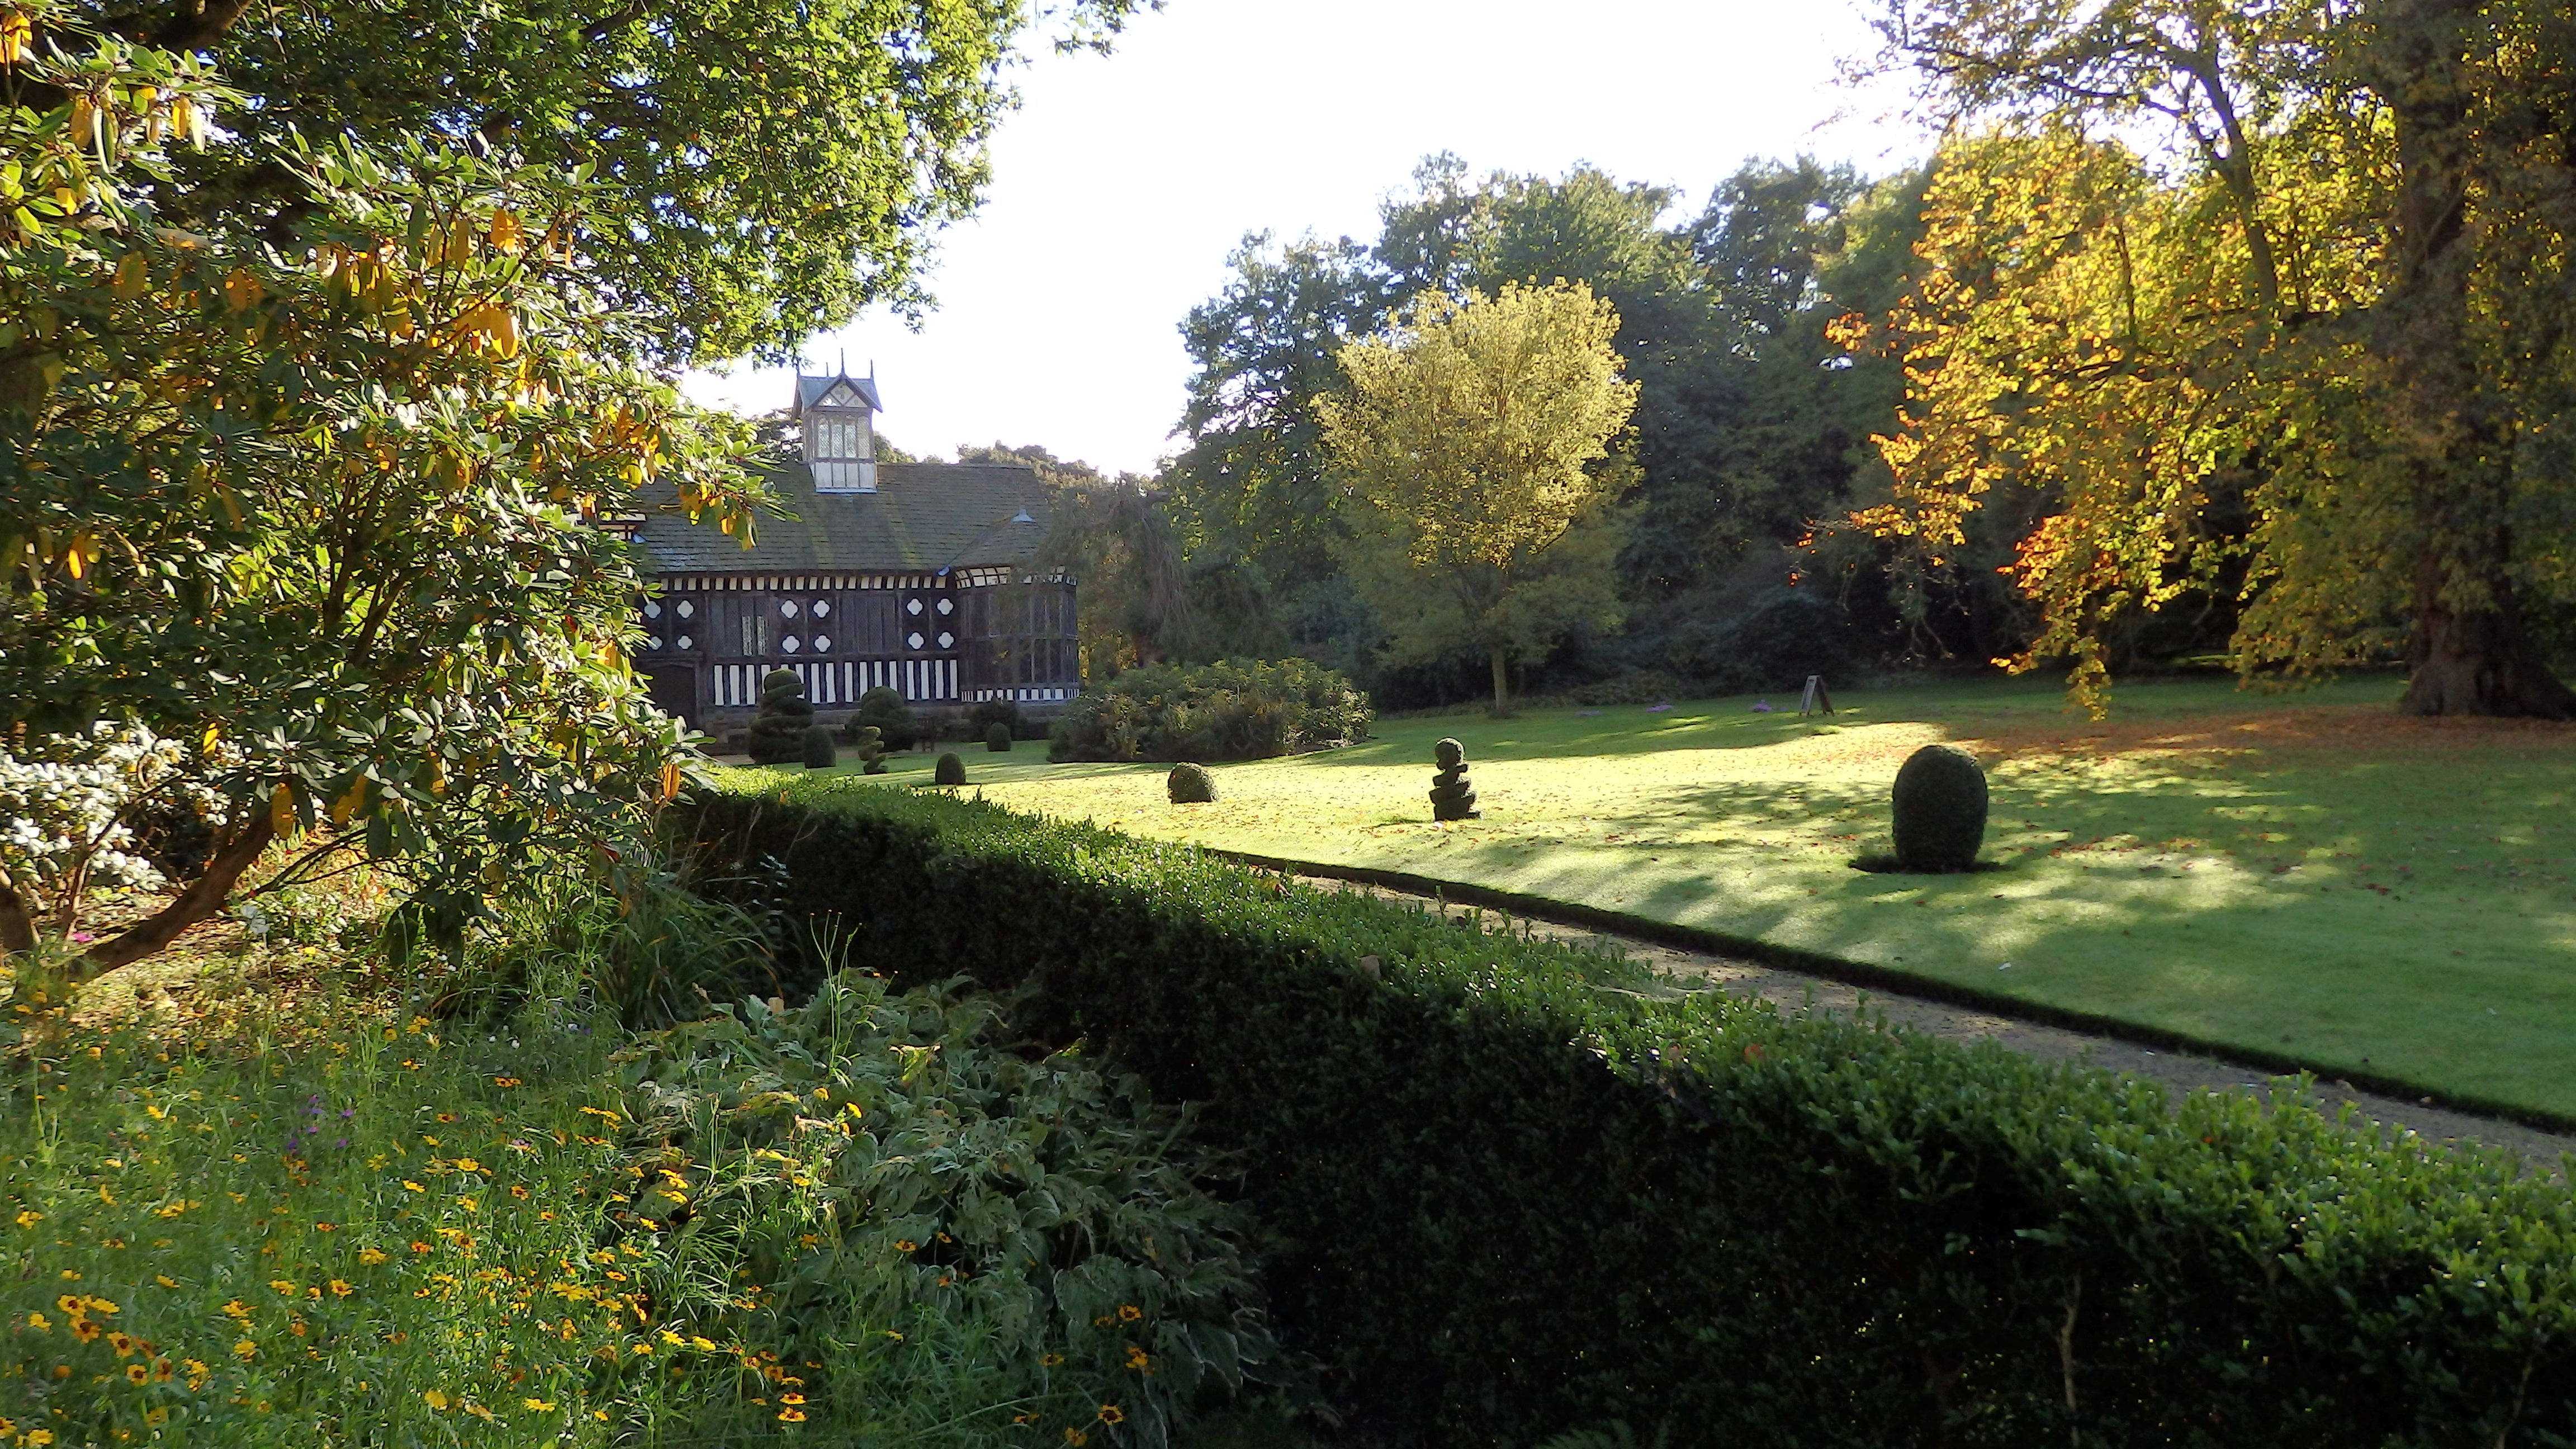 Rufford Old Hall autumn landscape image